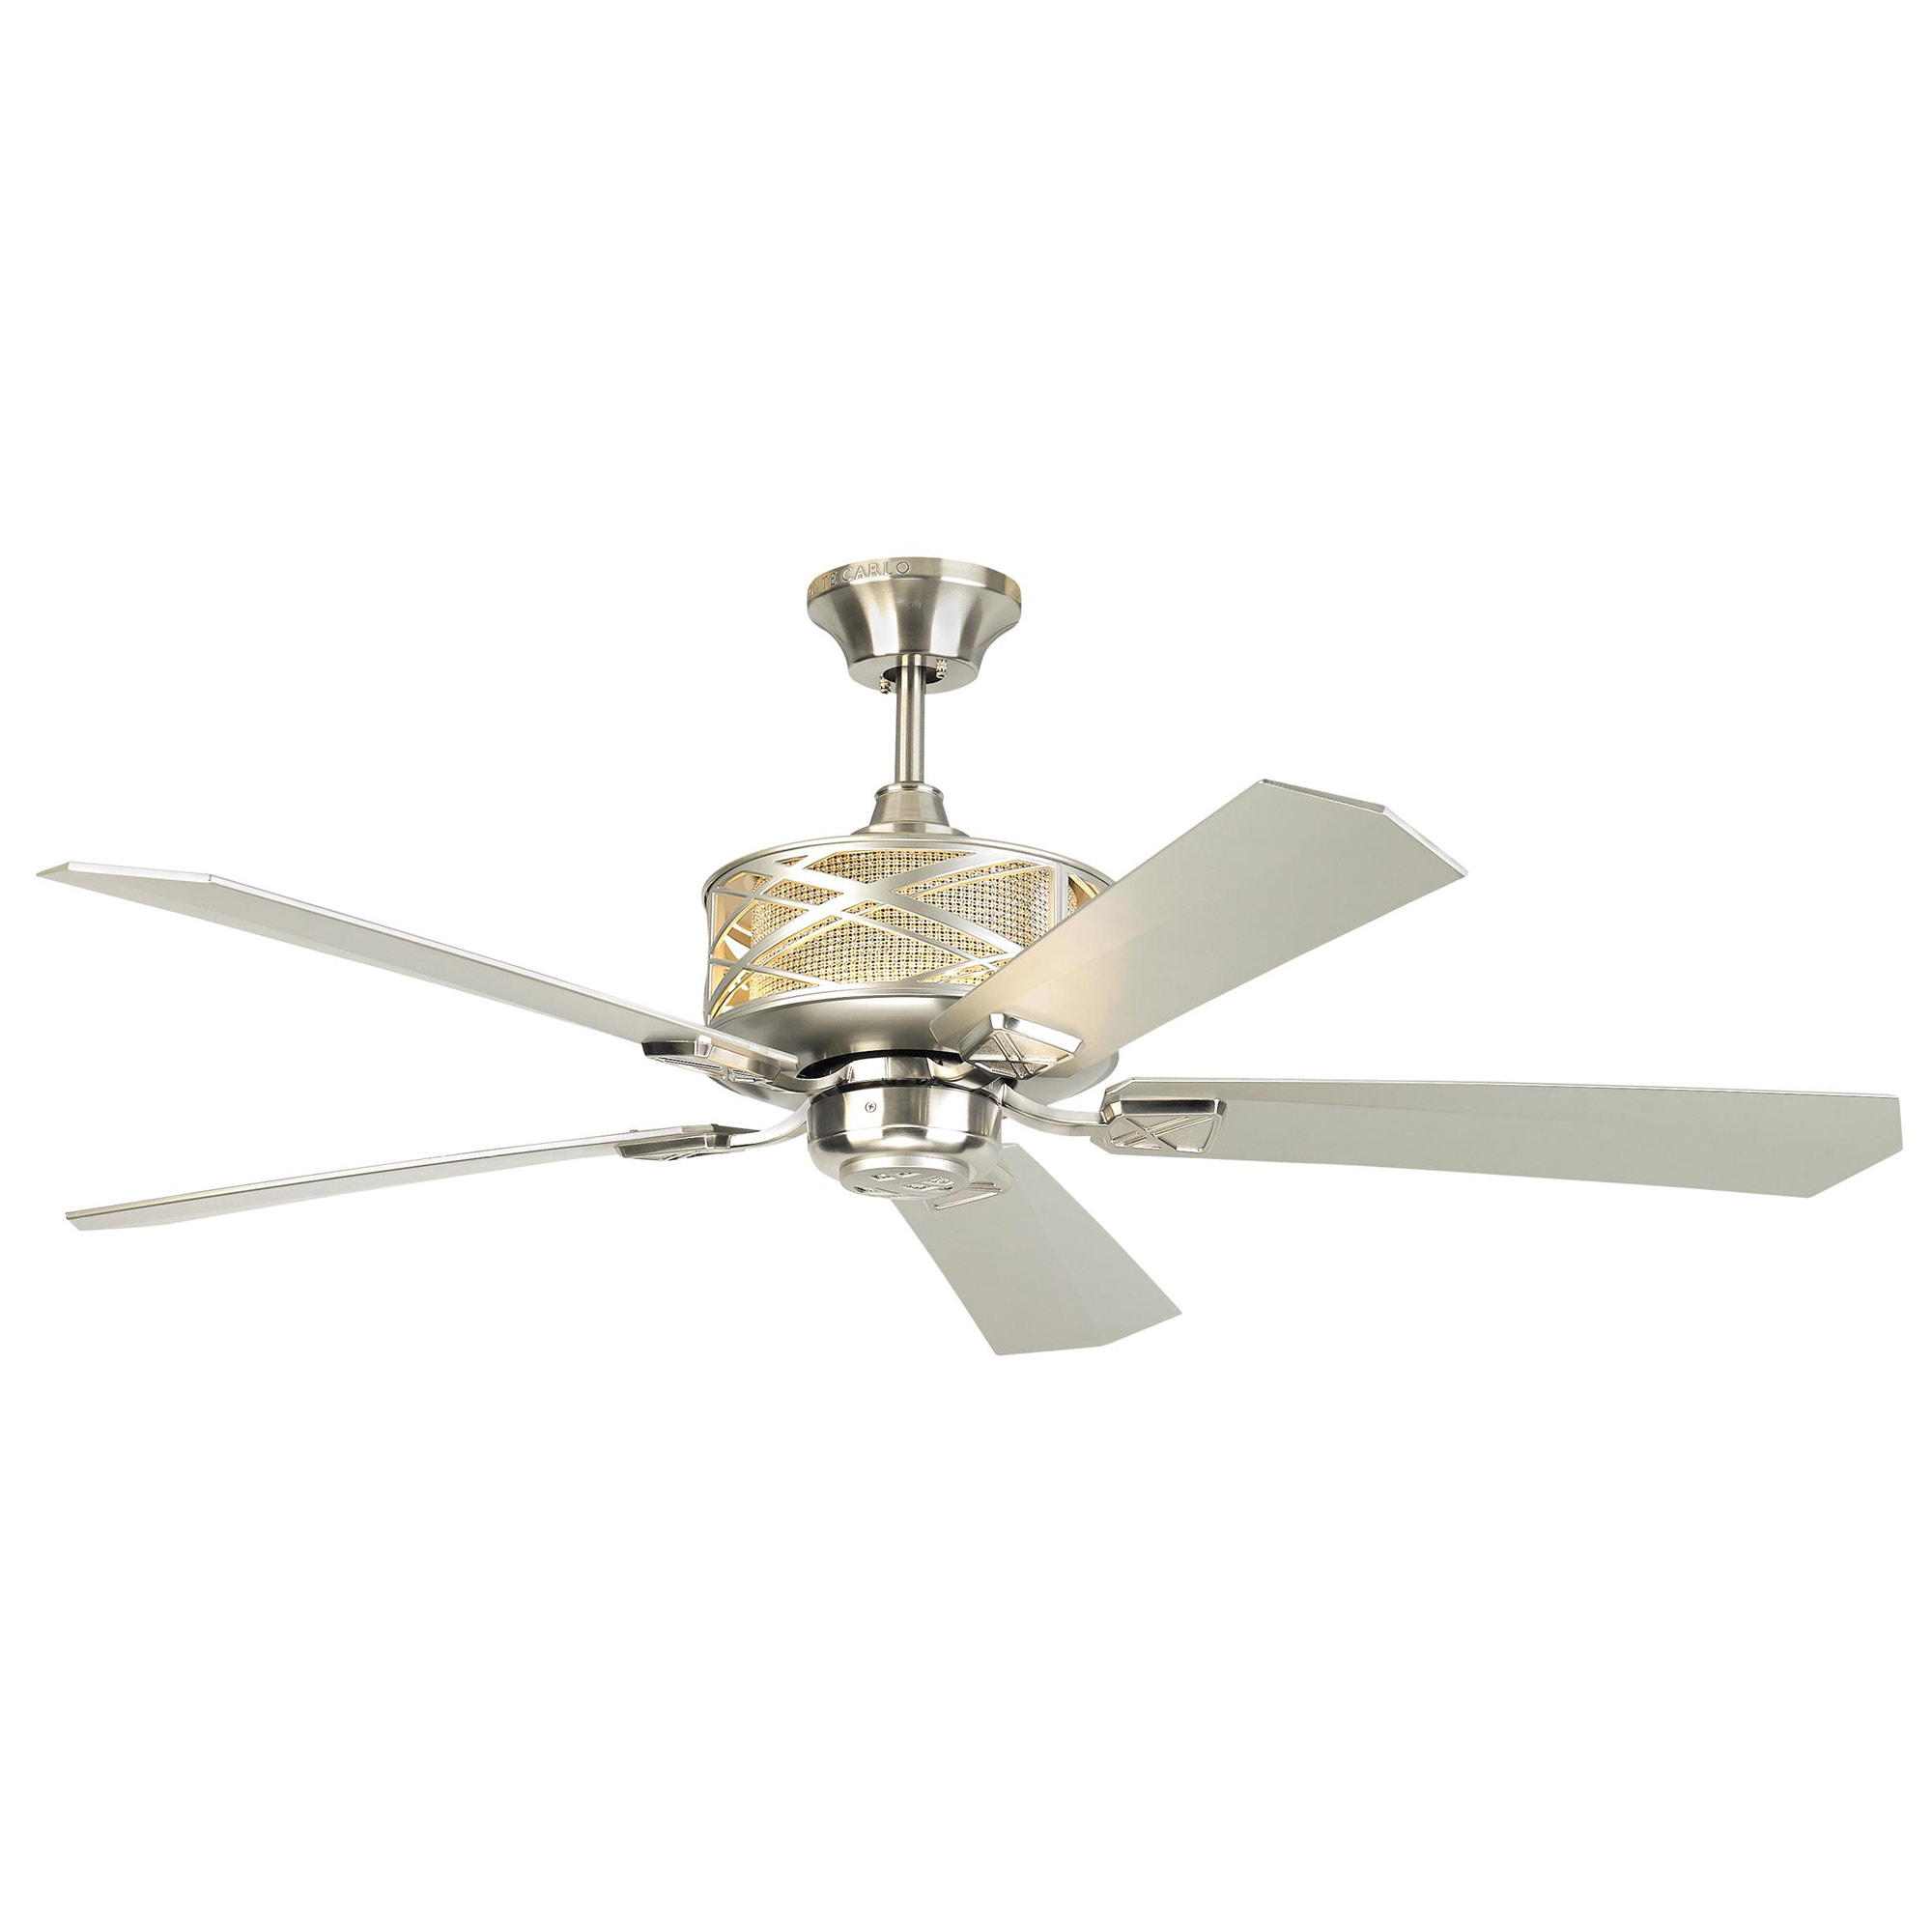 Ceiling Fan by Monte Carlo